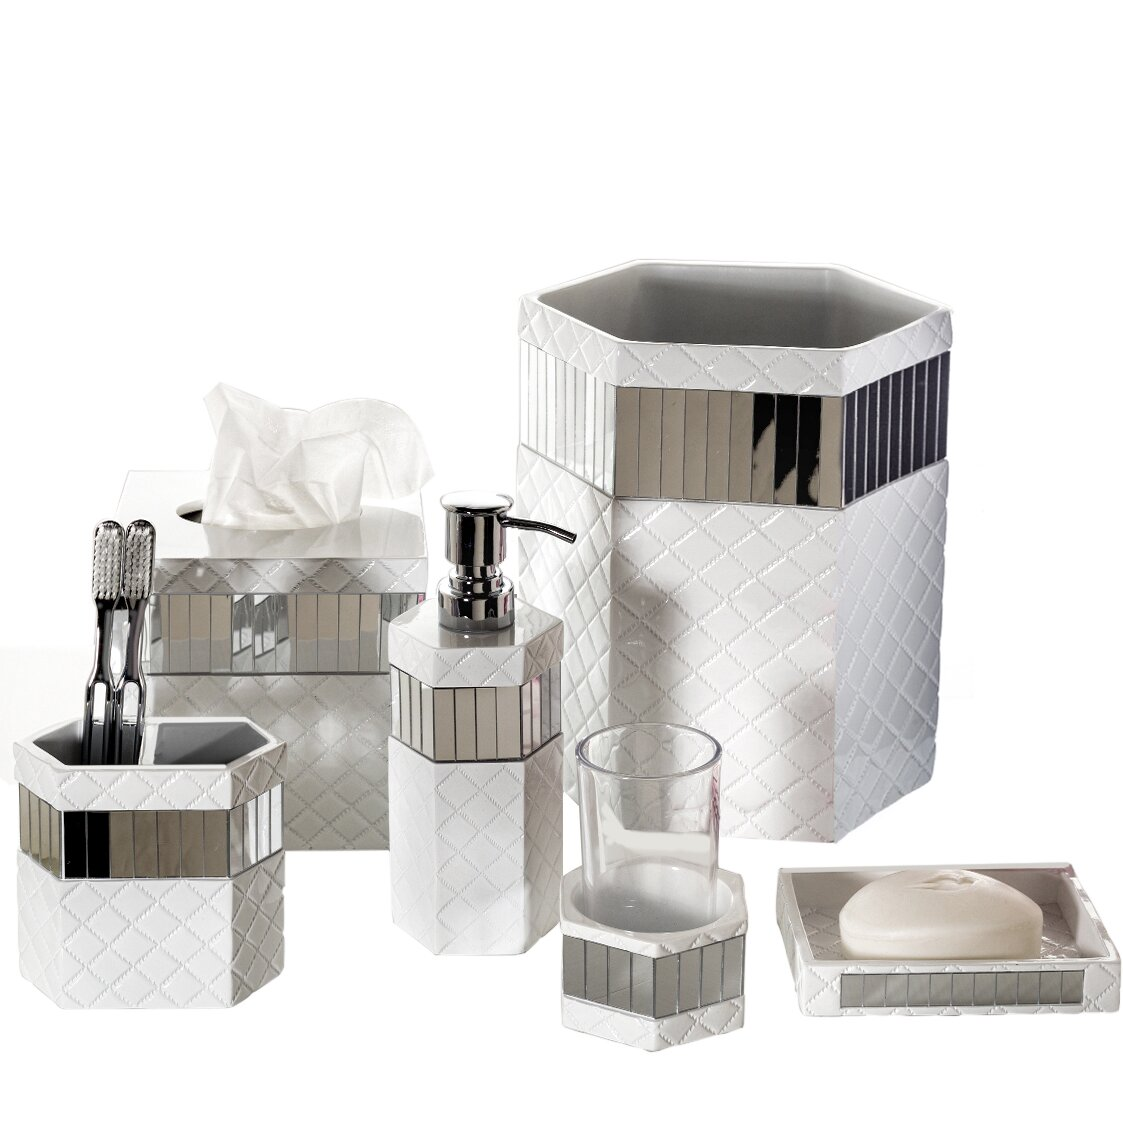 Bathroom Accessories Set With Mirror : Creative scents quilted mirror piece bathroom accessory